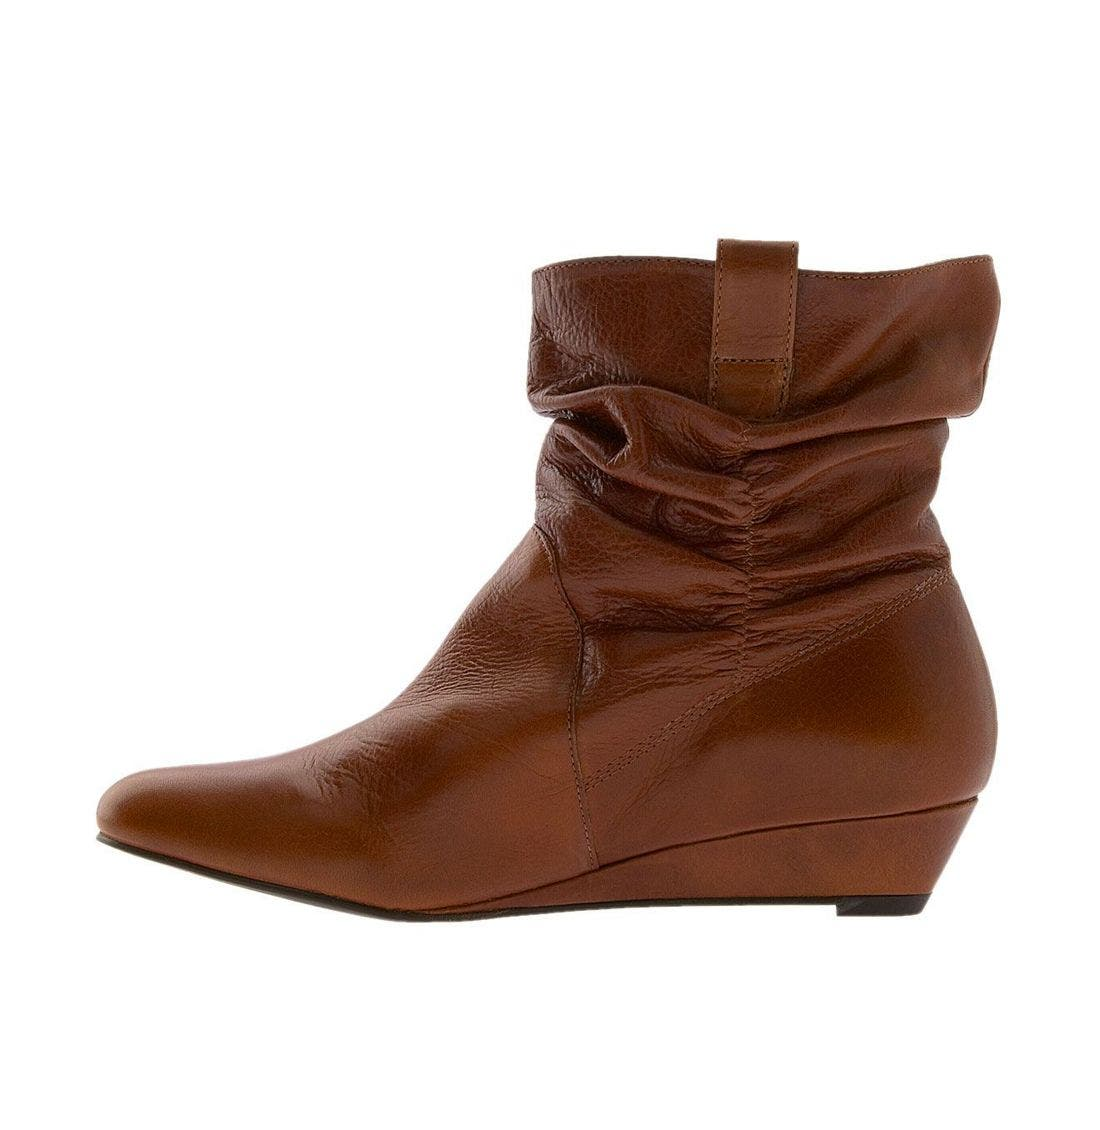 Alternate Image 2  - Steven by Steve Madden 'Insist' Ankle Boot